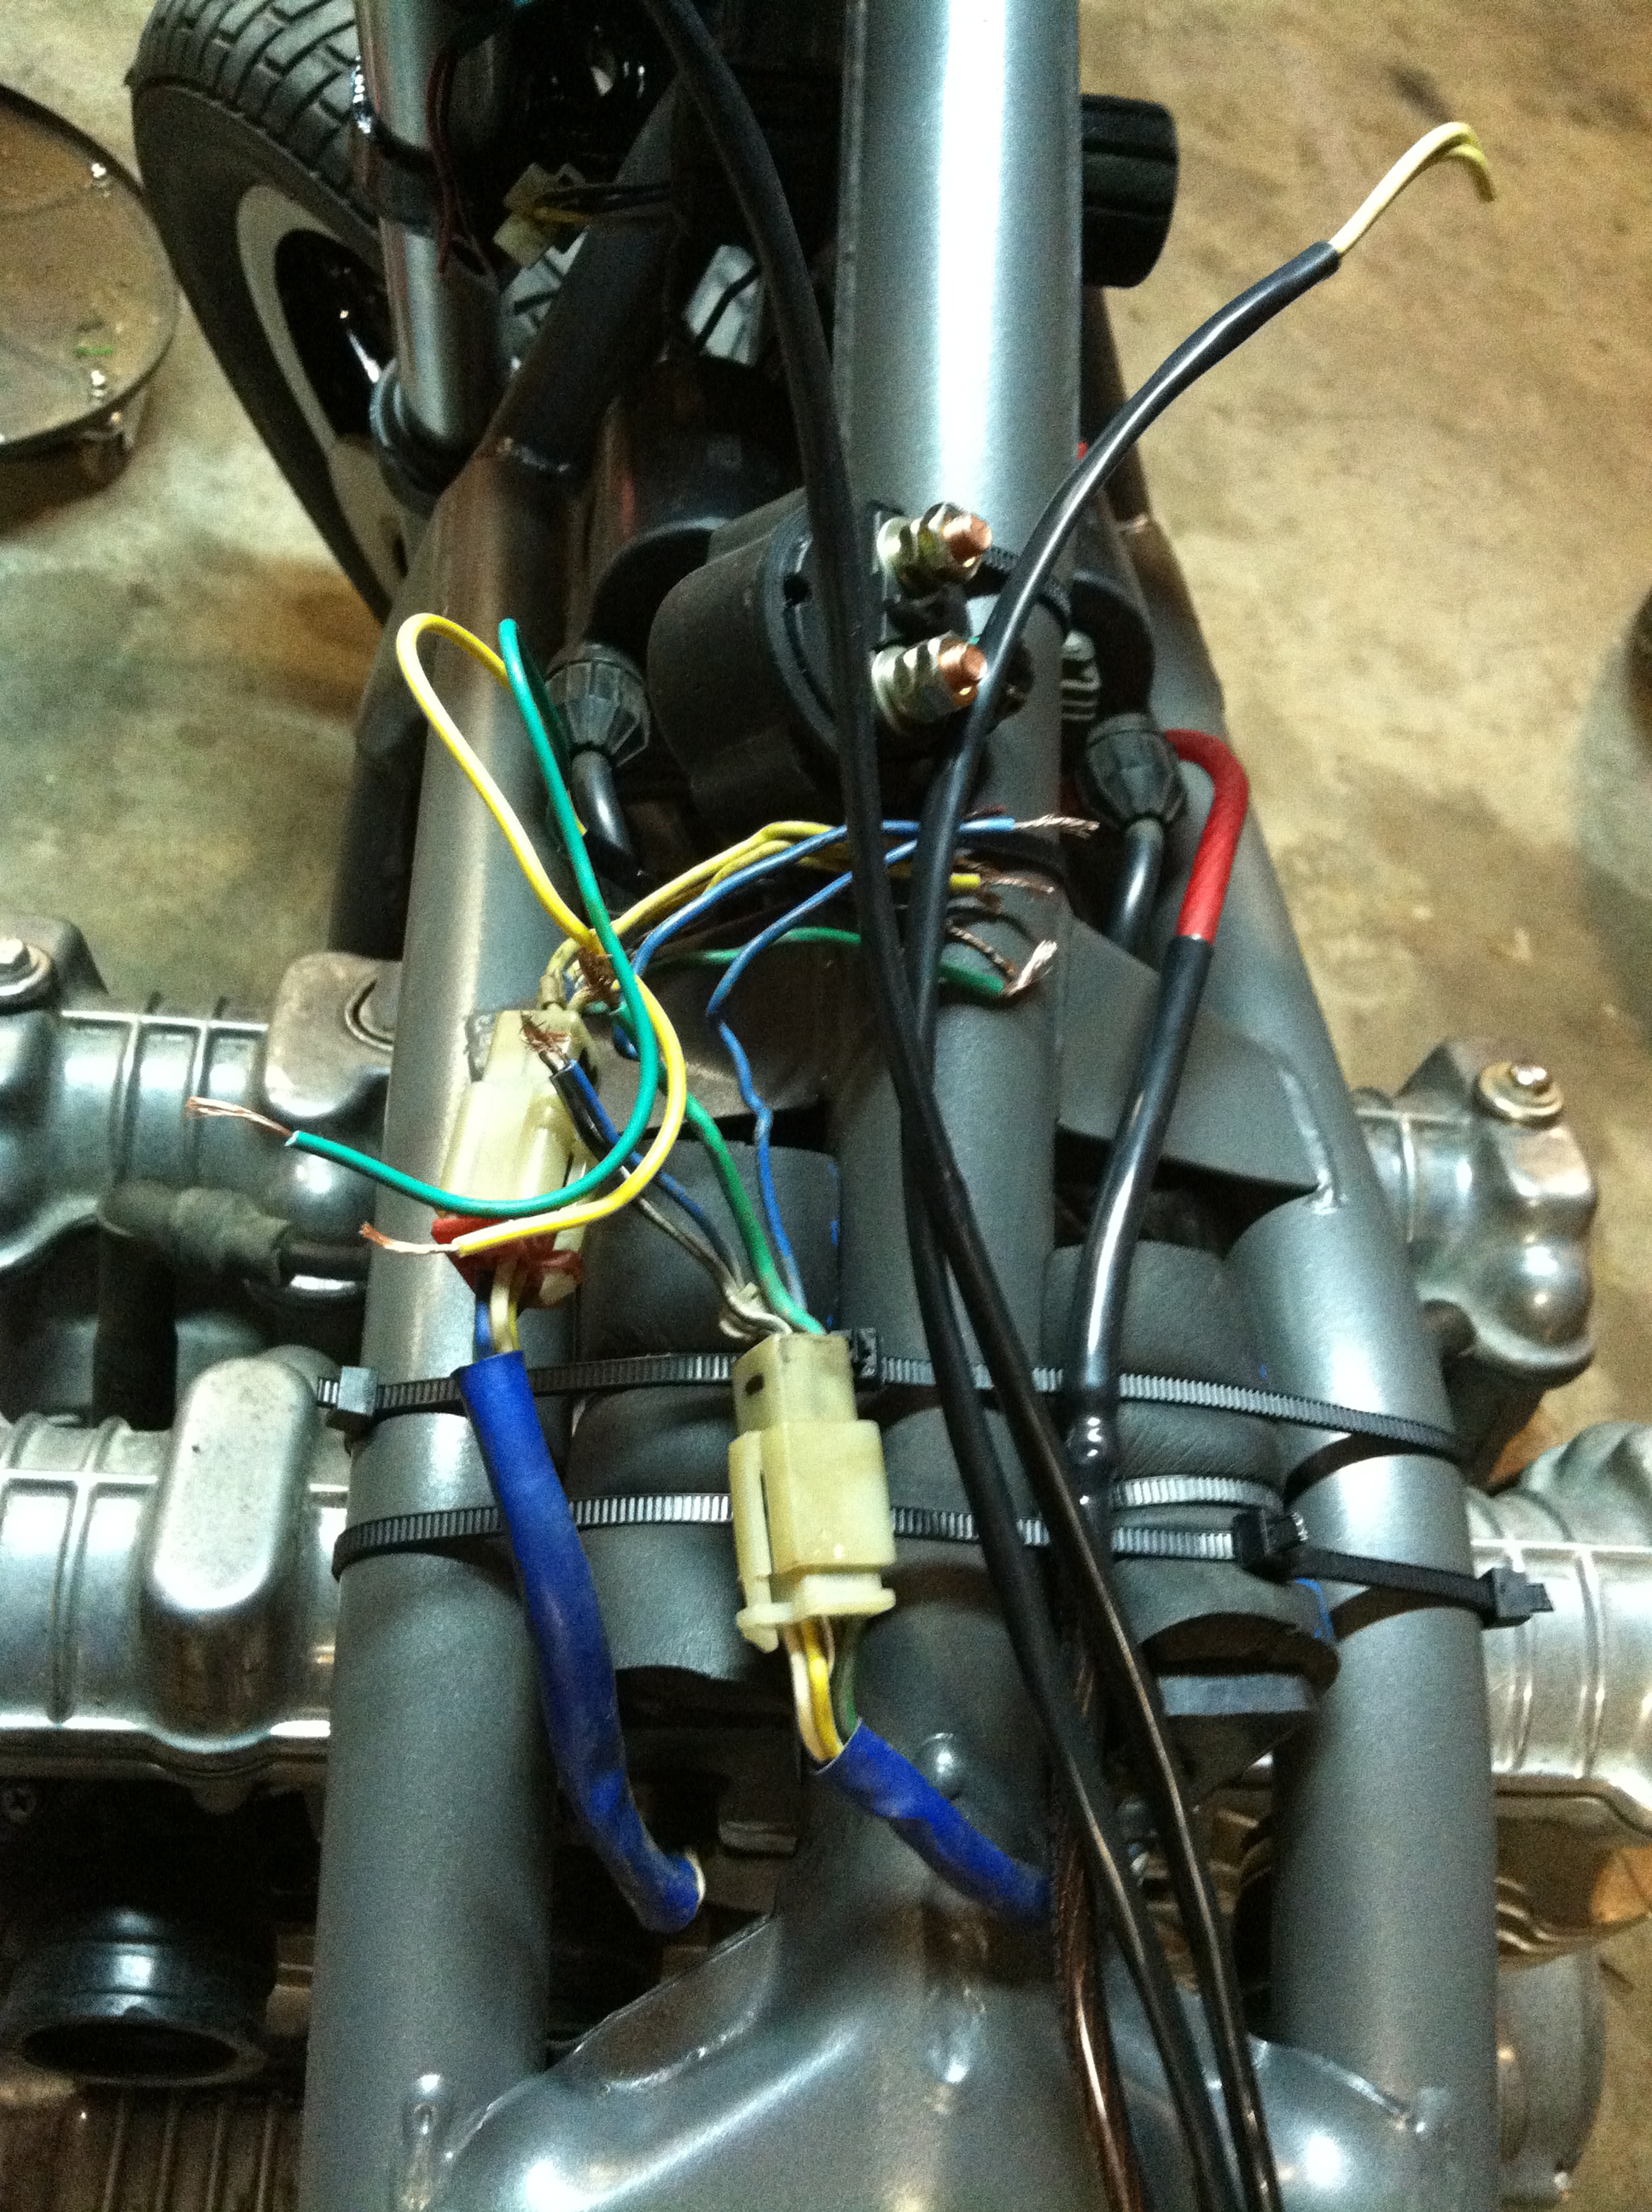 hight resolution of got all my electrical components on the bike just need to wire it all together now what you see here will all be cleaned up and hidden under the tank of